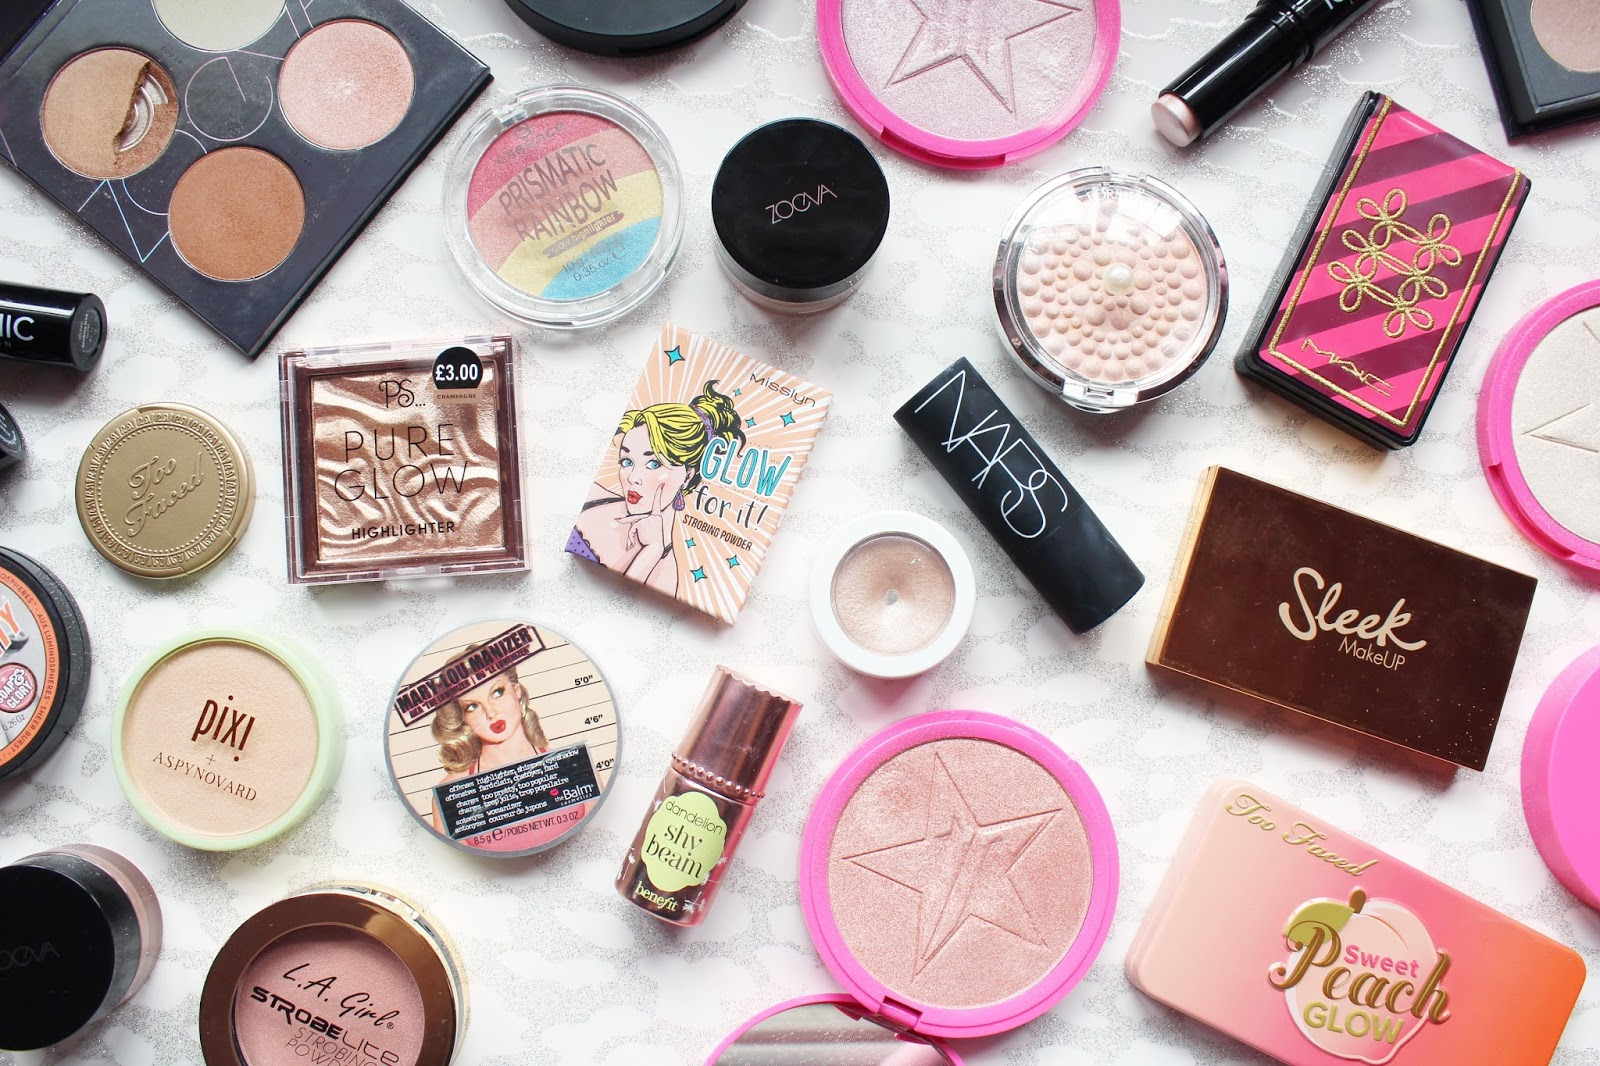 My Highlighter Collection